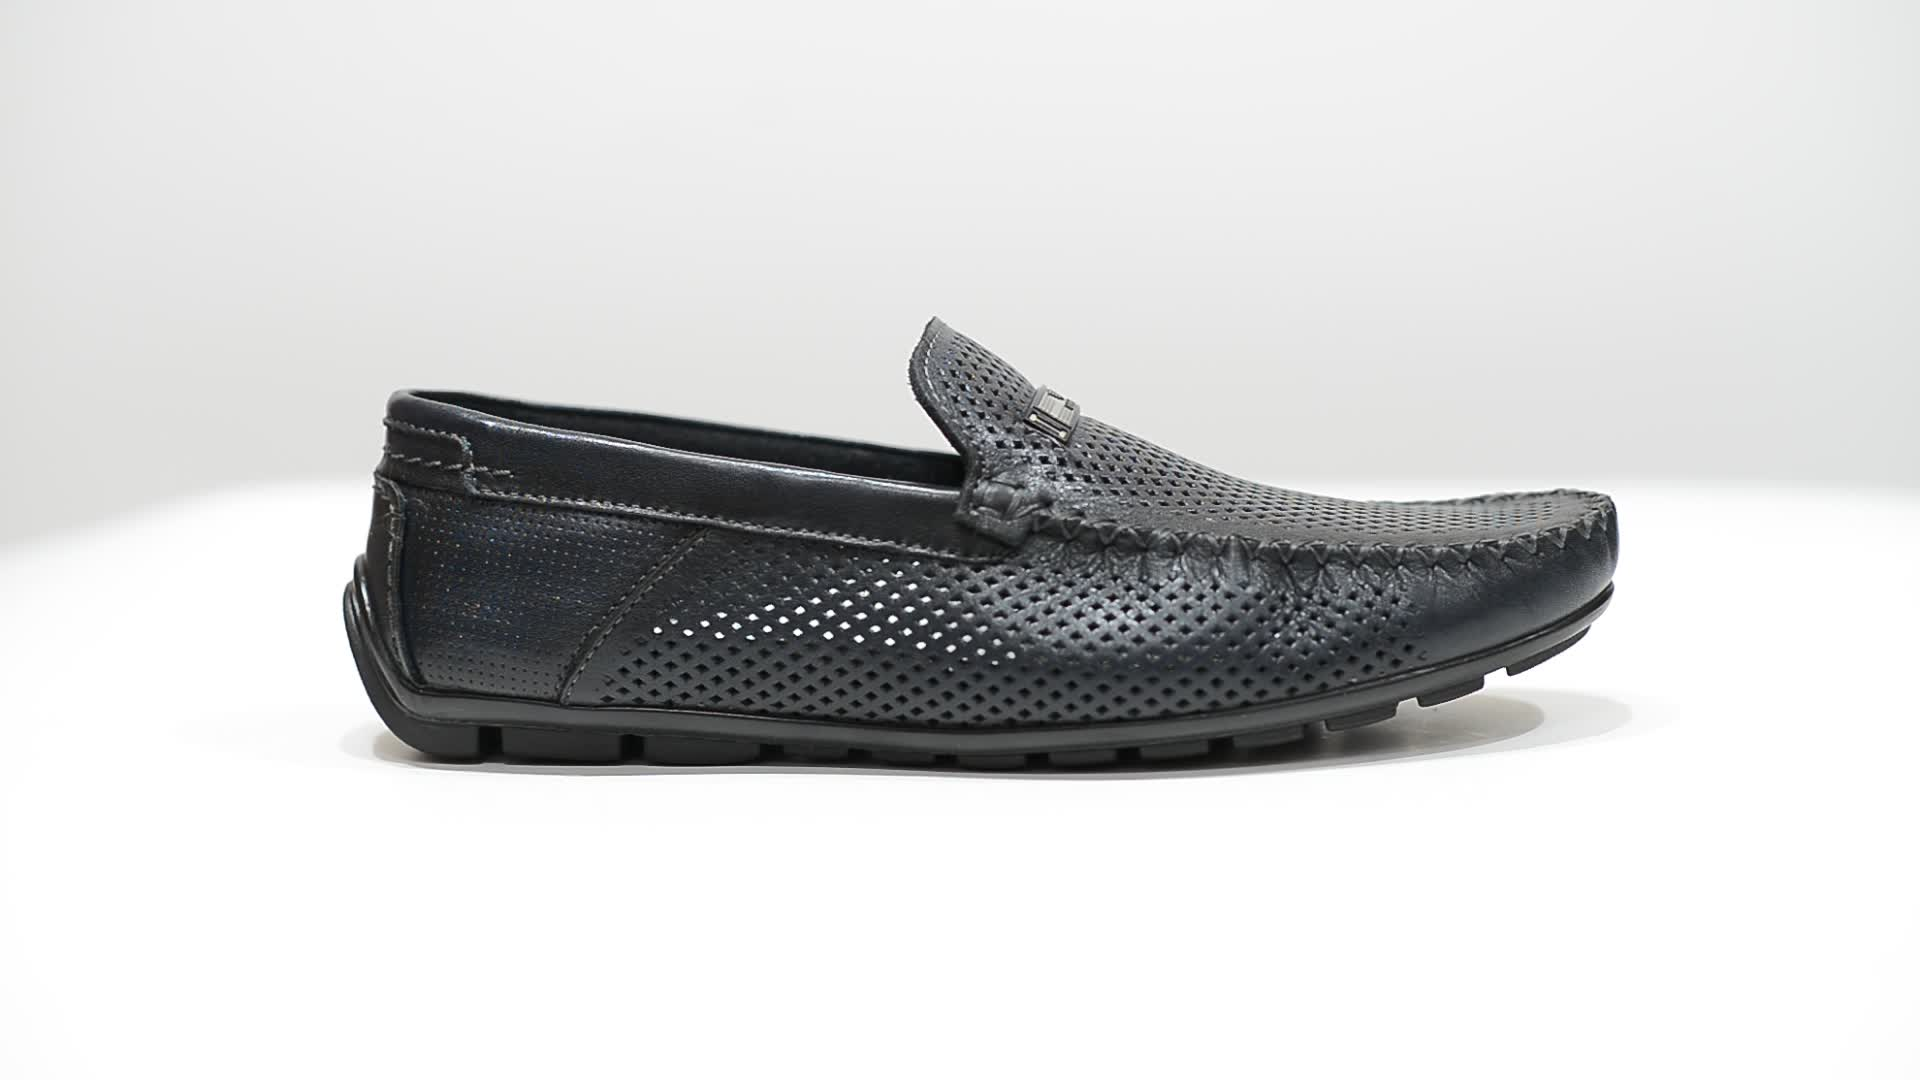 Summer casual shoes, L675 sp